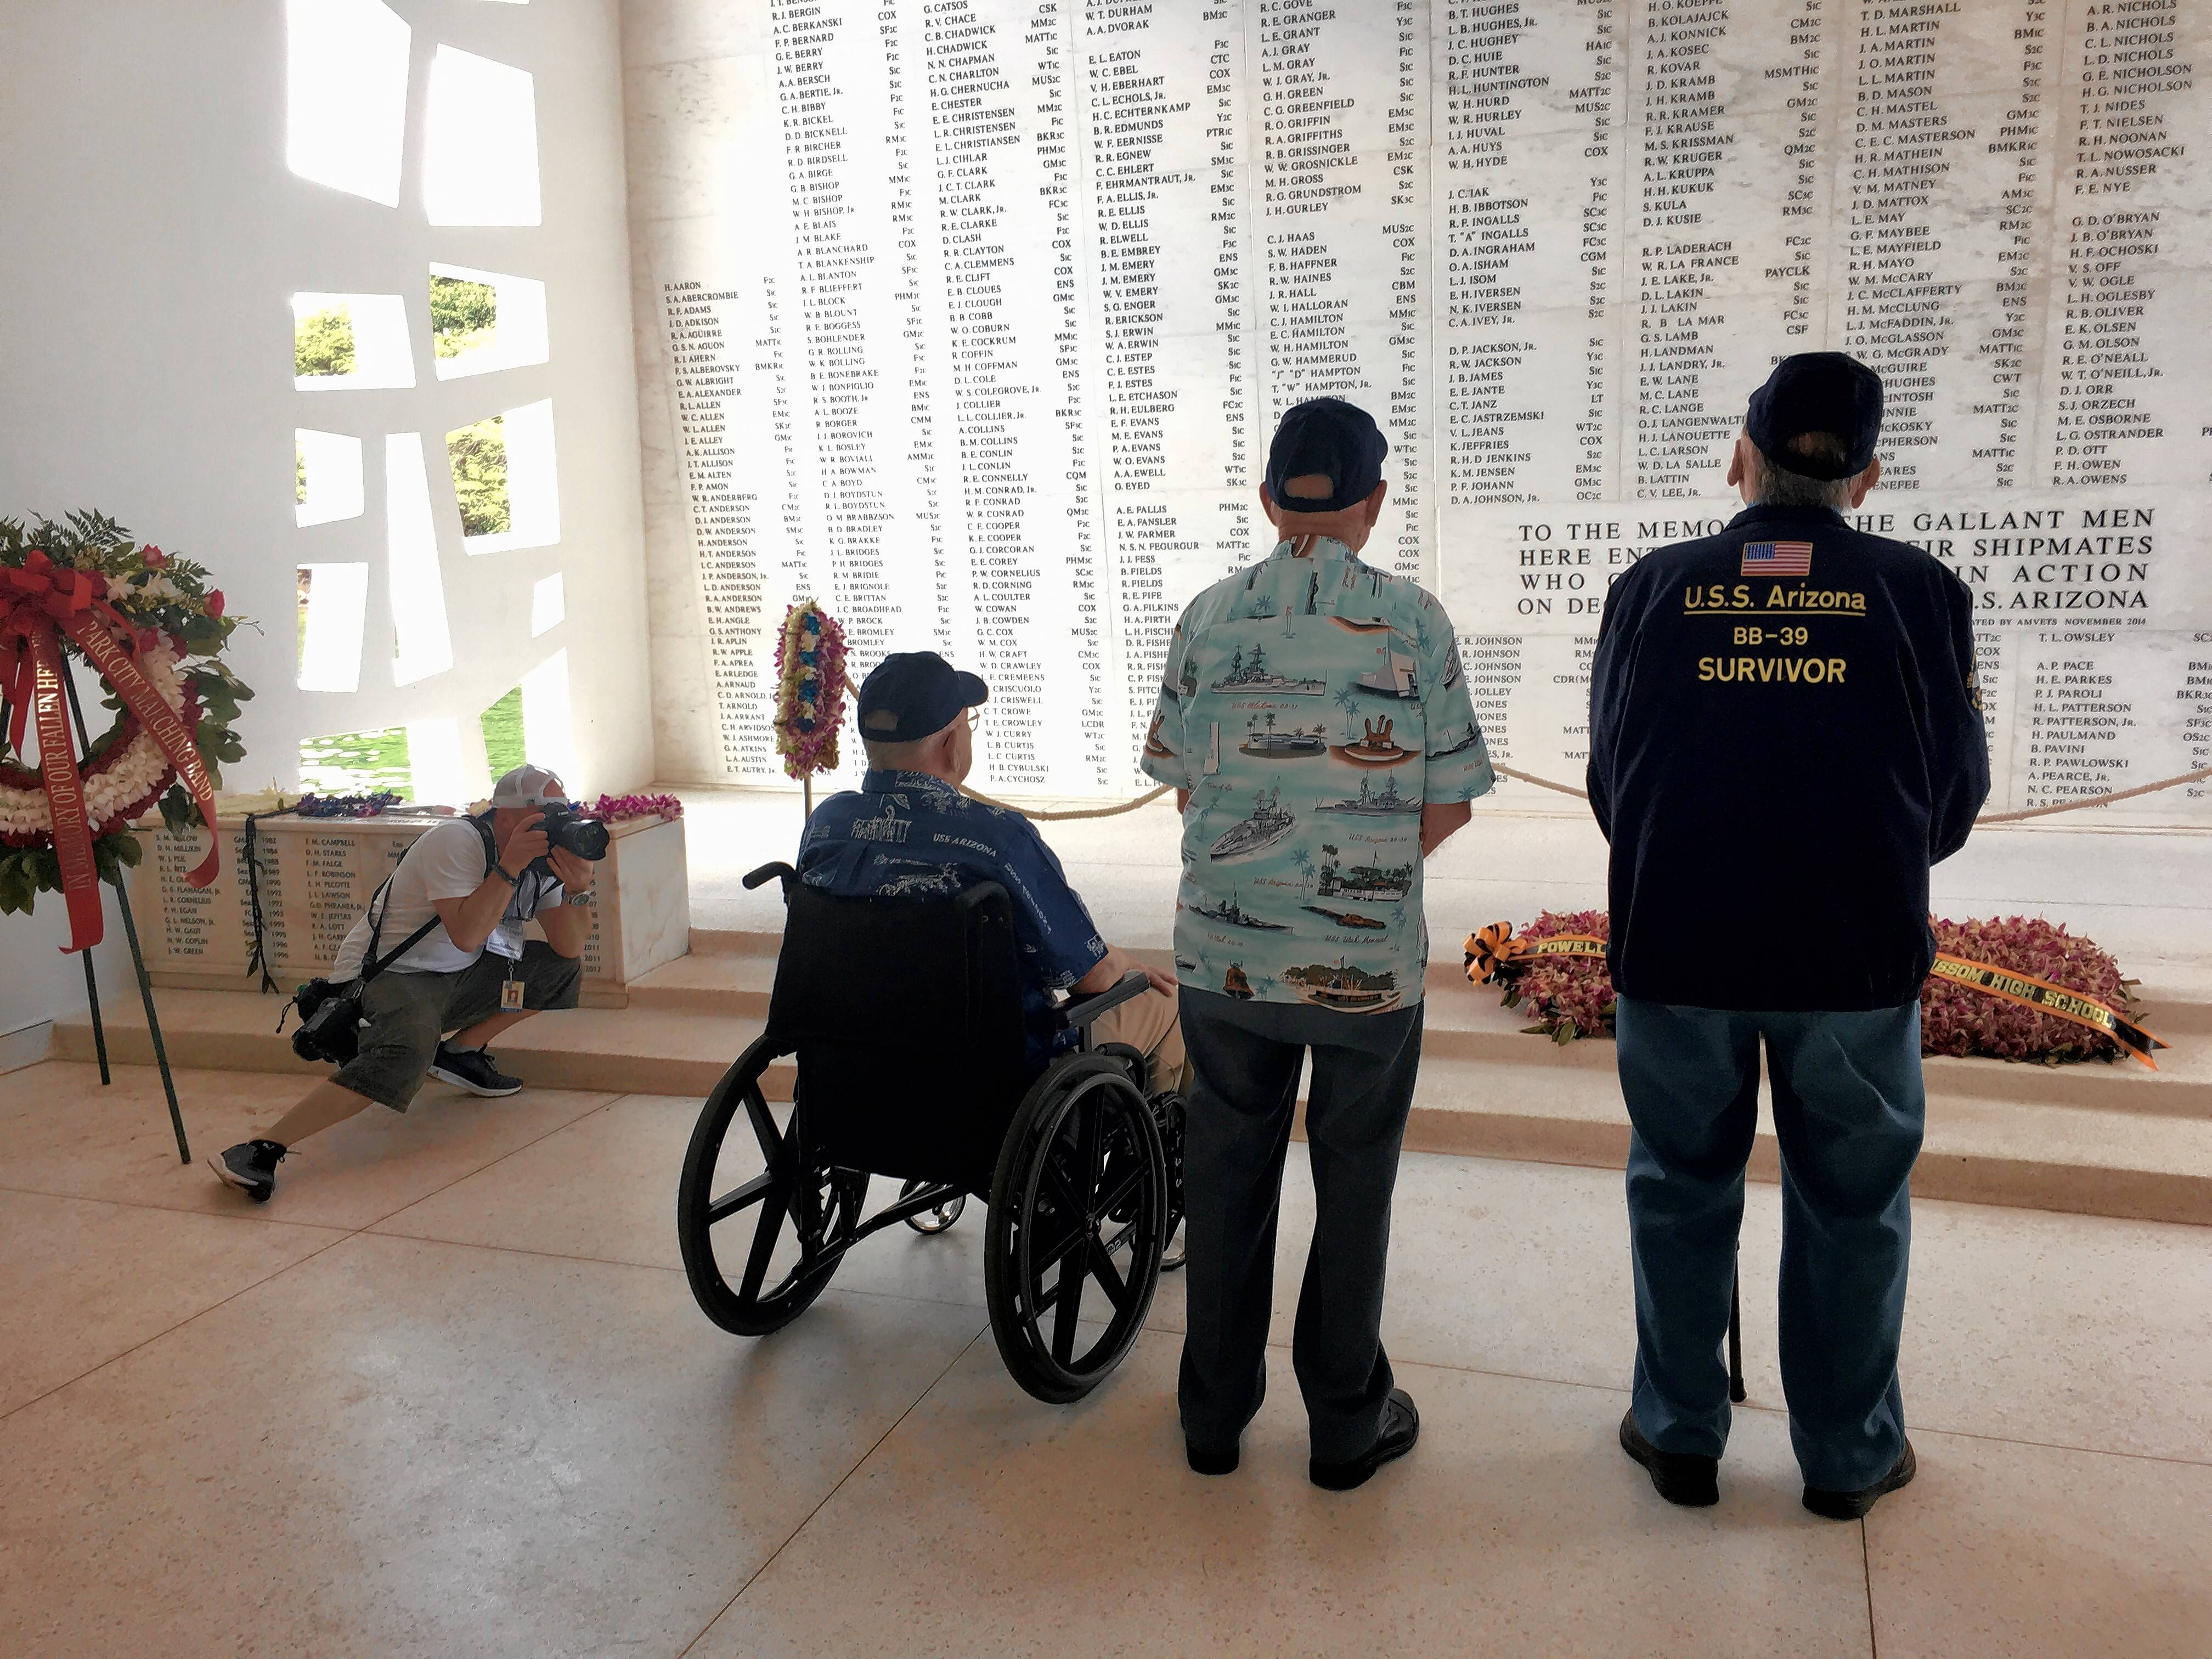 Controlling his emotions, photographer Paolo Cascio of Schaumburg captures three veterans who survived the Dec. 7, 1941, attack that sank their ship as the trio pay tribute to those who went down with the USS Arizona.